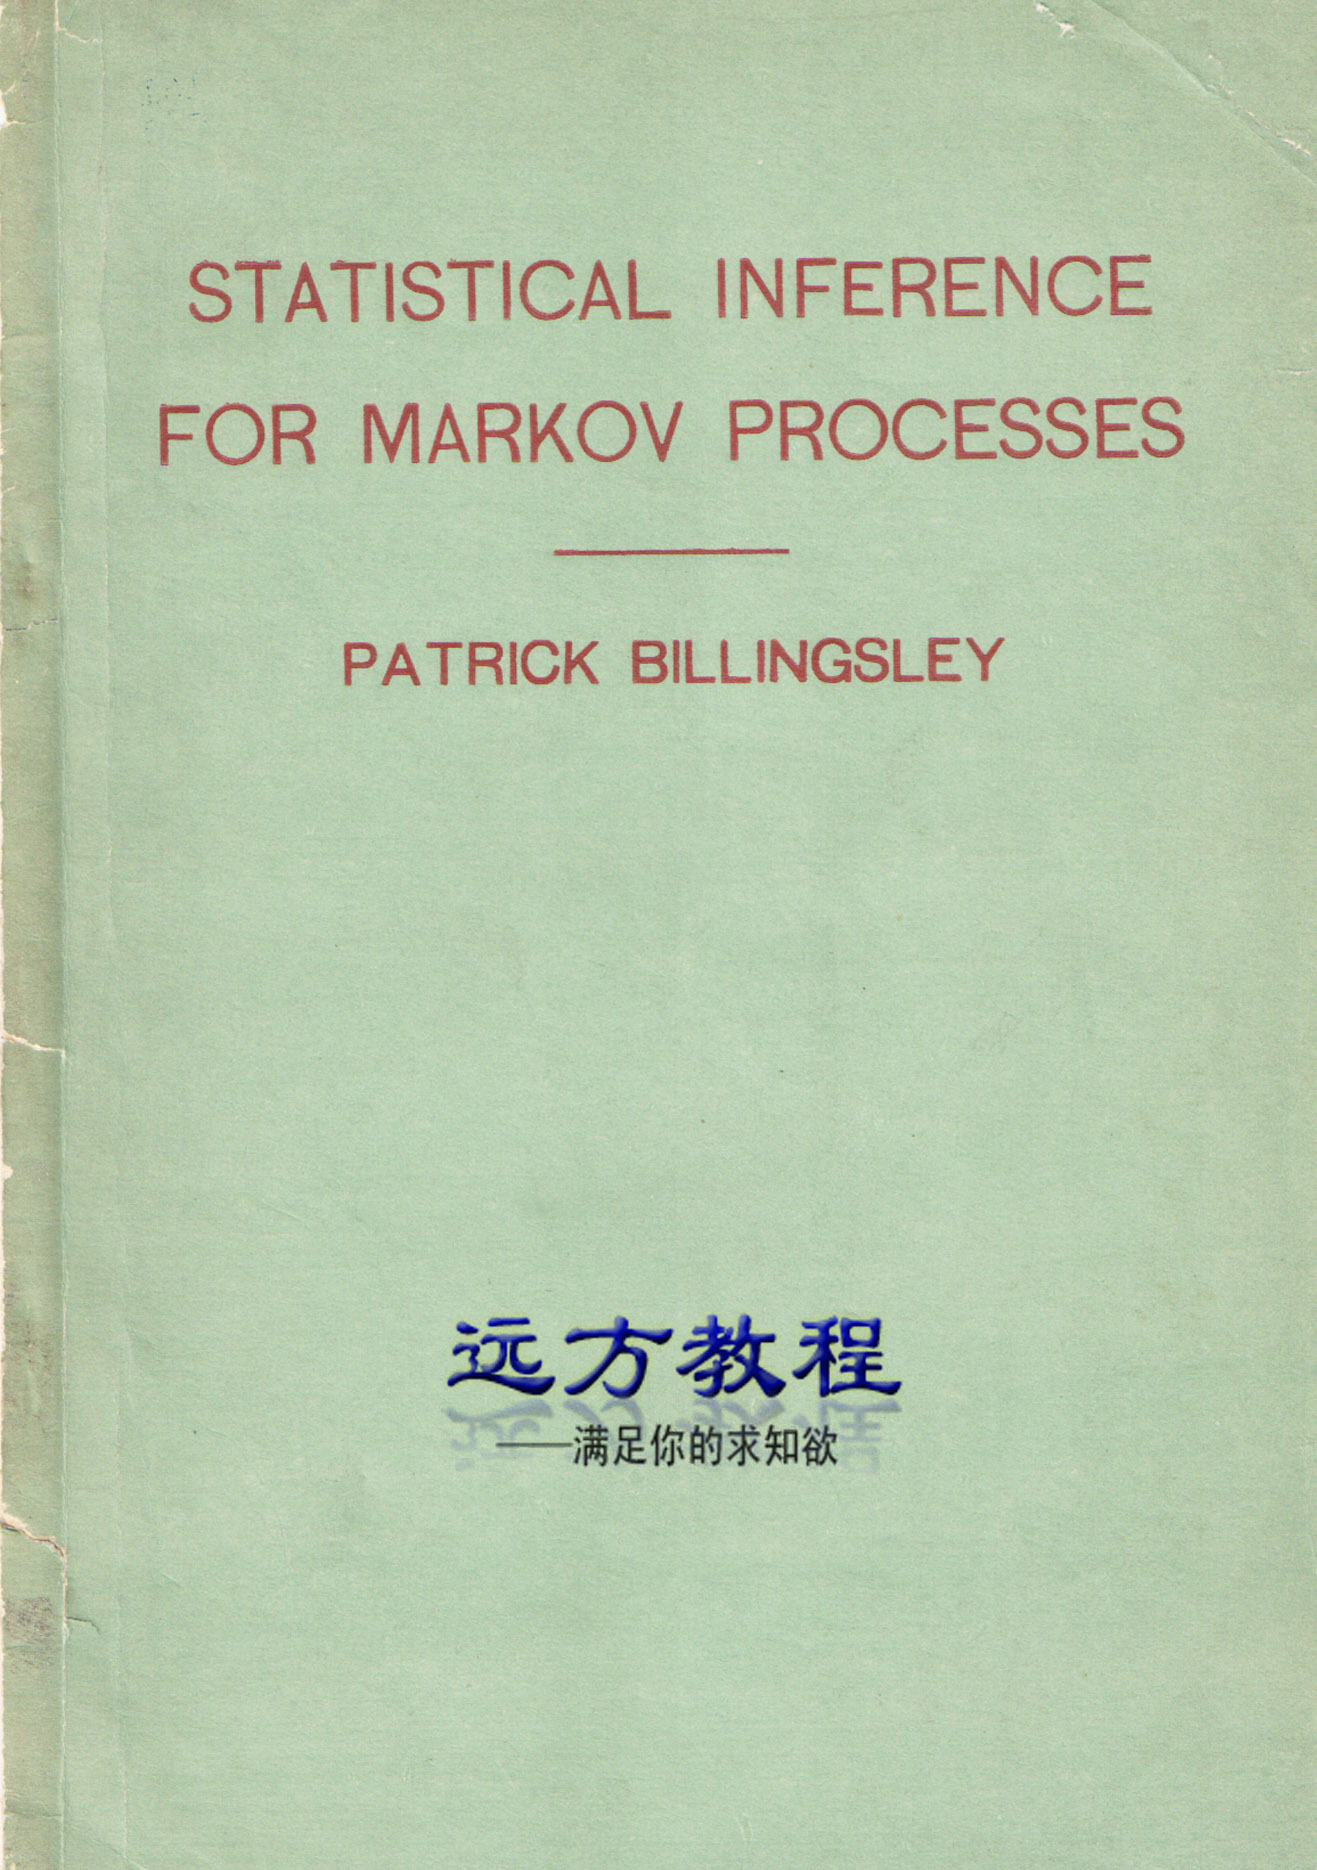 Statistical Inference for Markov Processes-远方教程